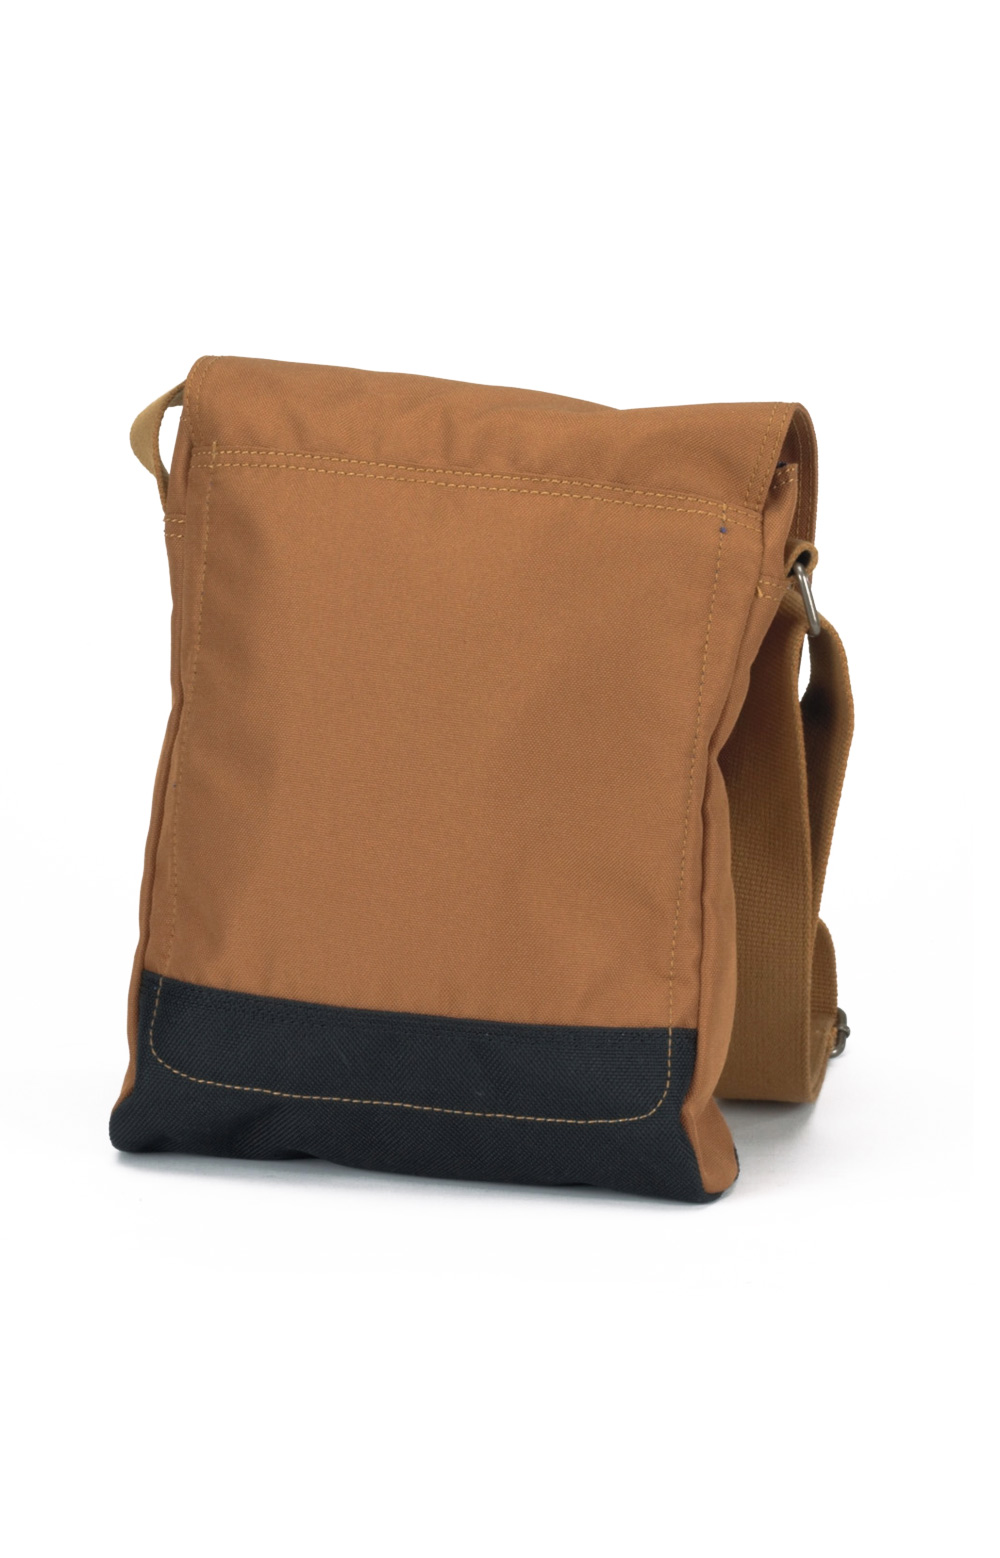 Cross Body Carry All - Carhartt Brown  2